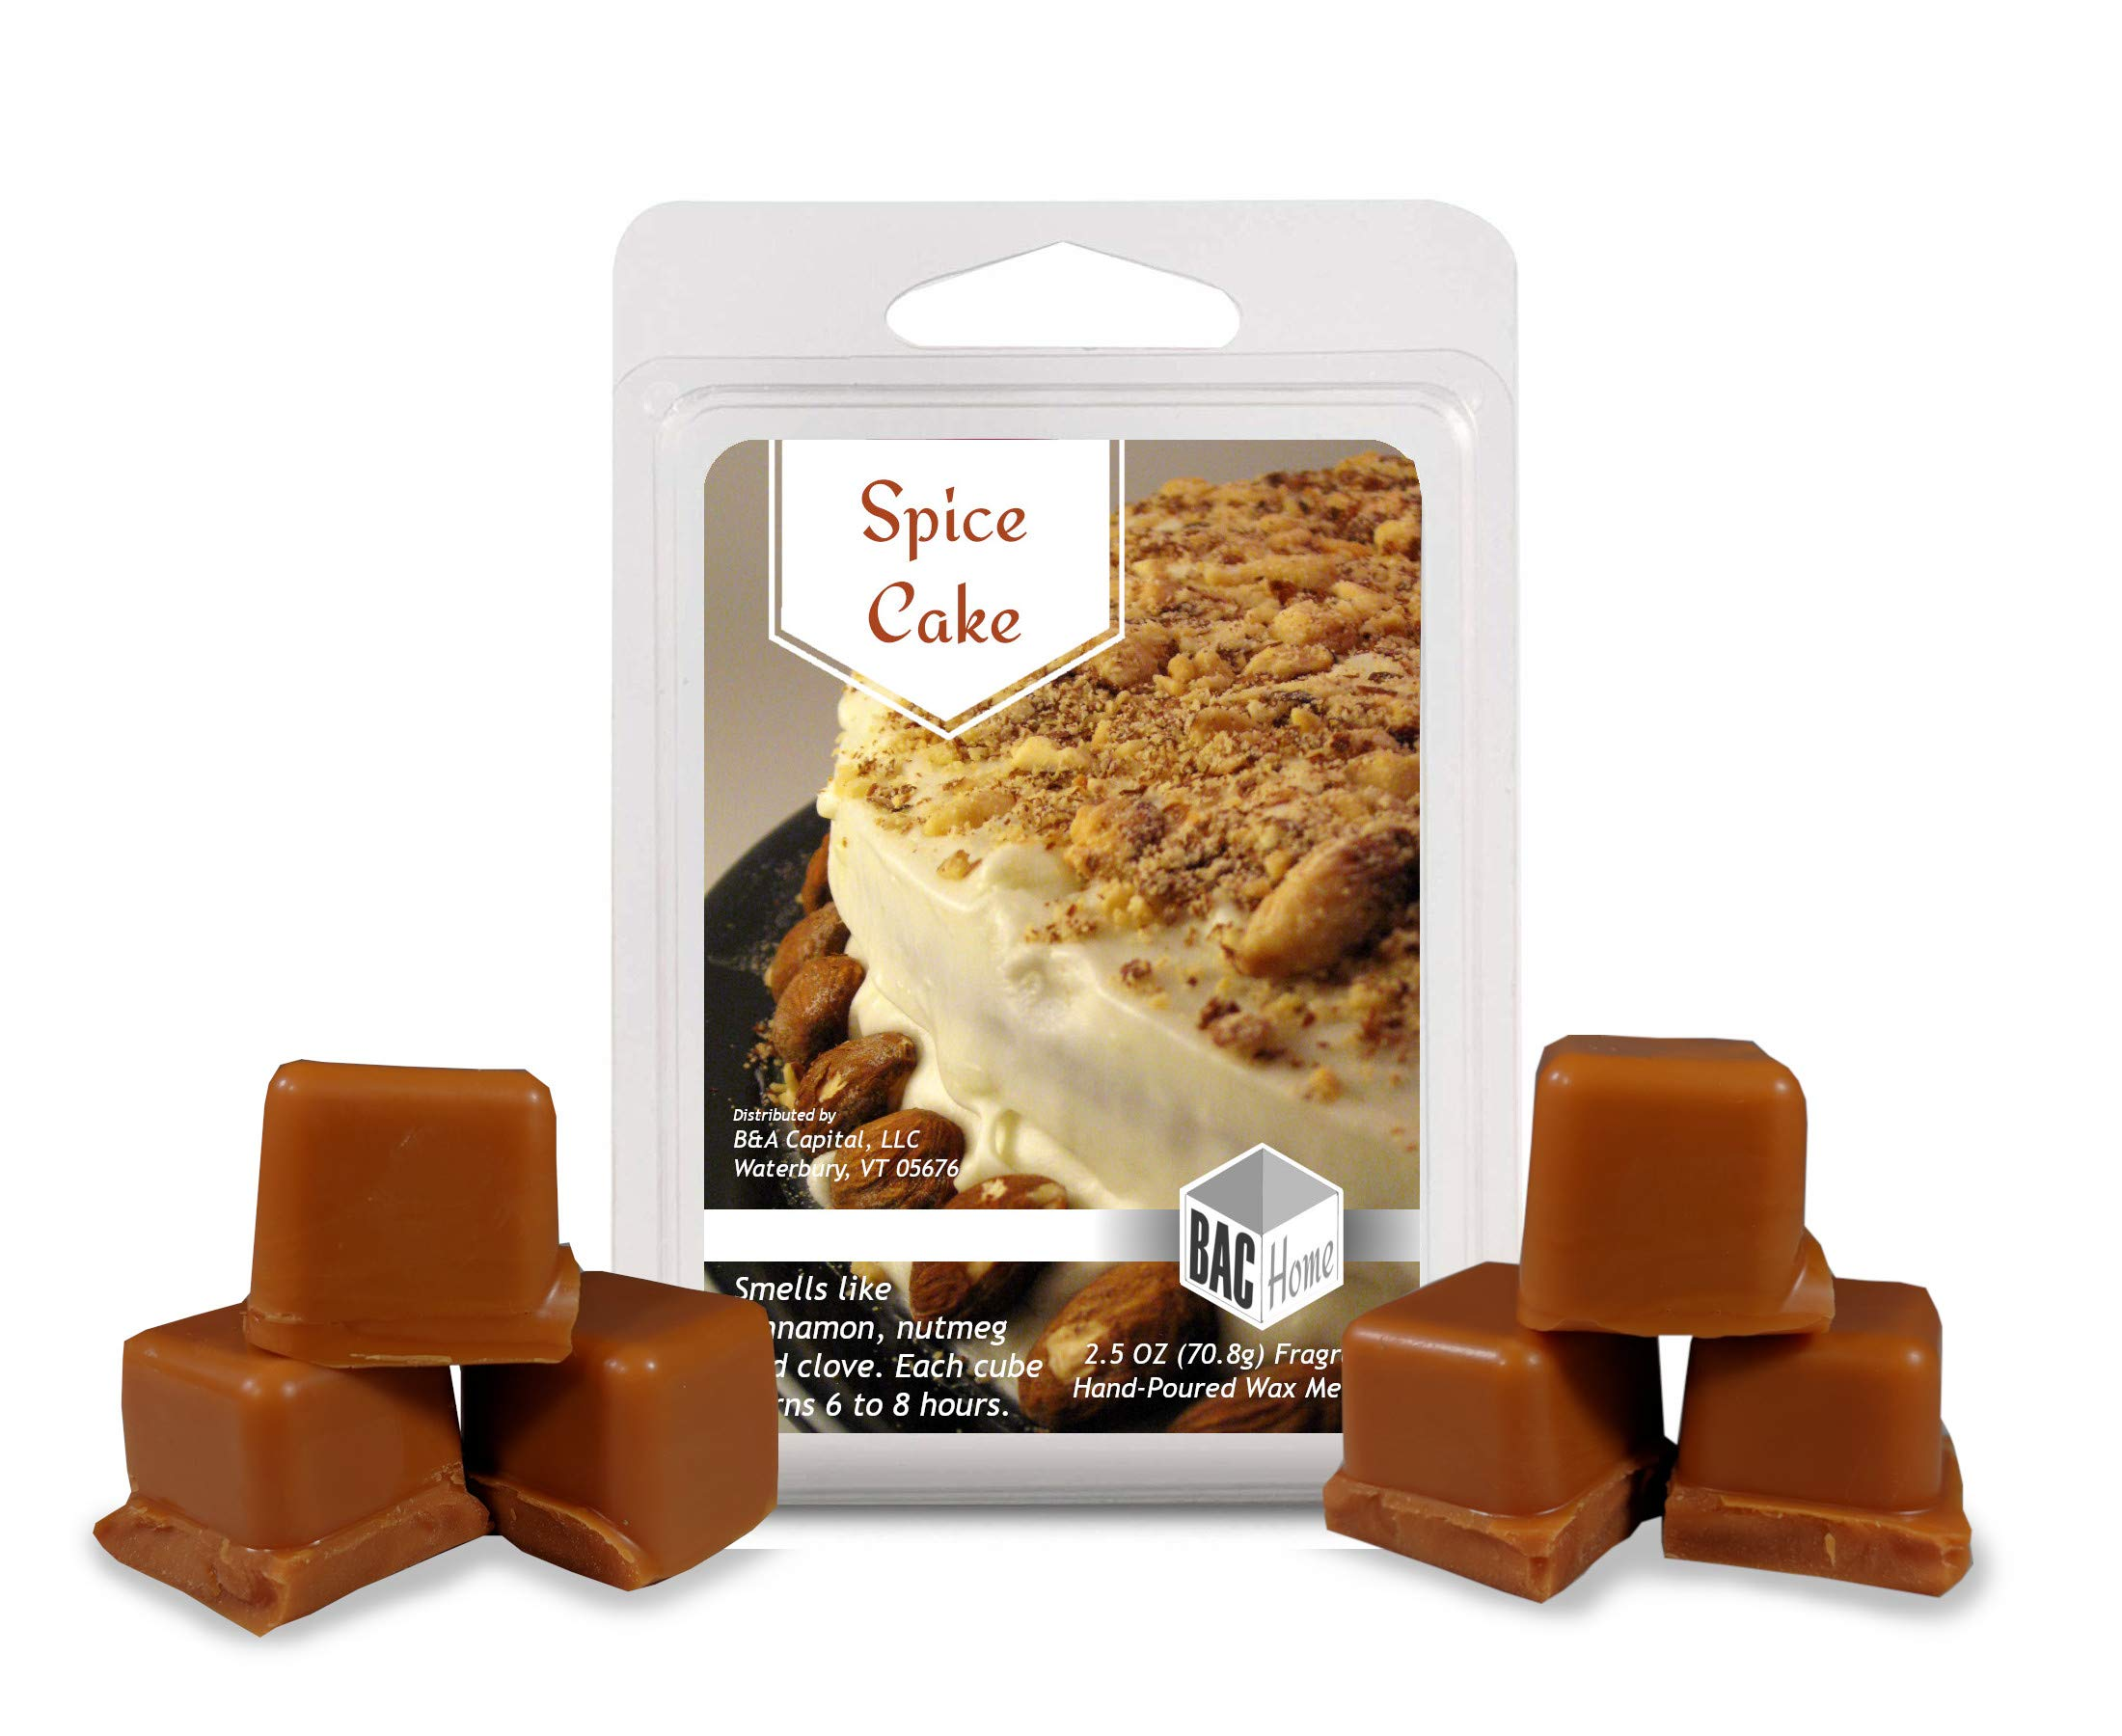 BAC Home 4 Pack - Grandma's Kitchen Collection Soy Blend Scented Wax Melts Wax Cubes, 10.0 oz, [24 Cubes] with Spice Cake, Maple Syrup, Cinnamon Buns and Mulberry Jam by BAC Home (Image #4)